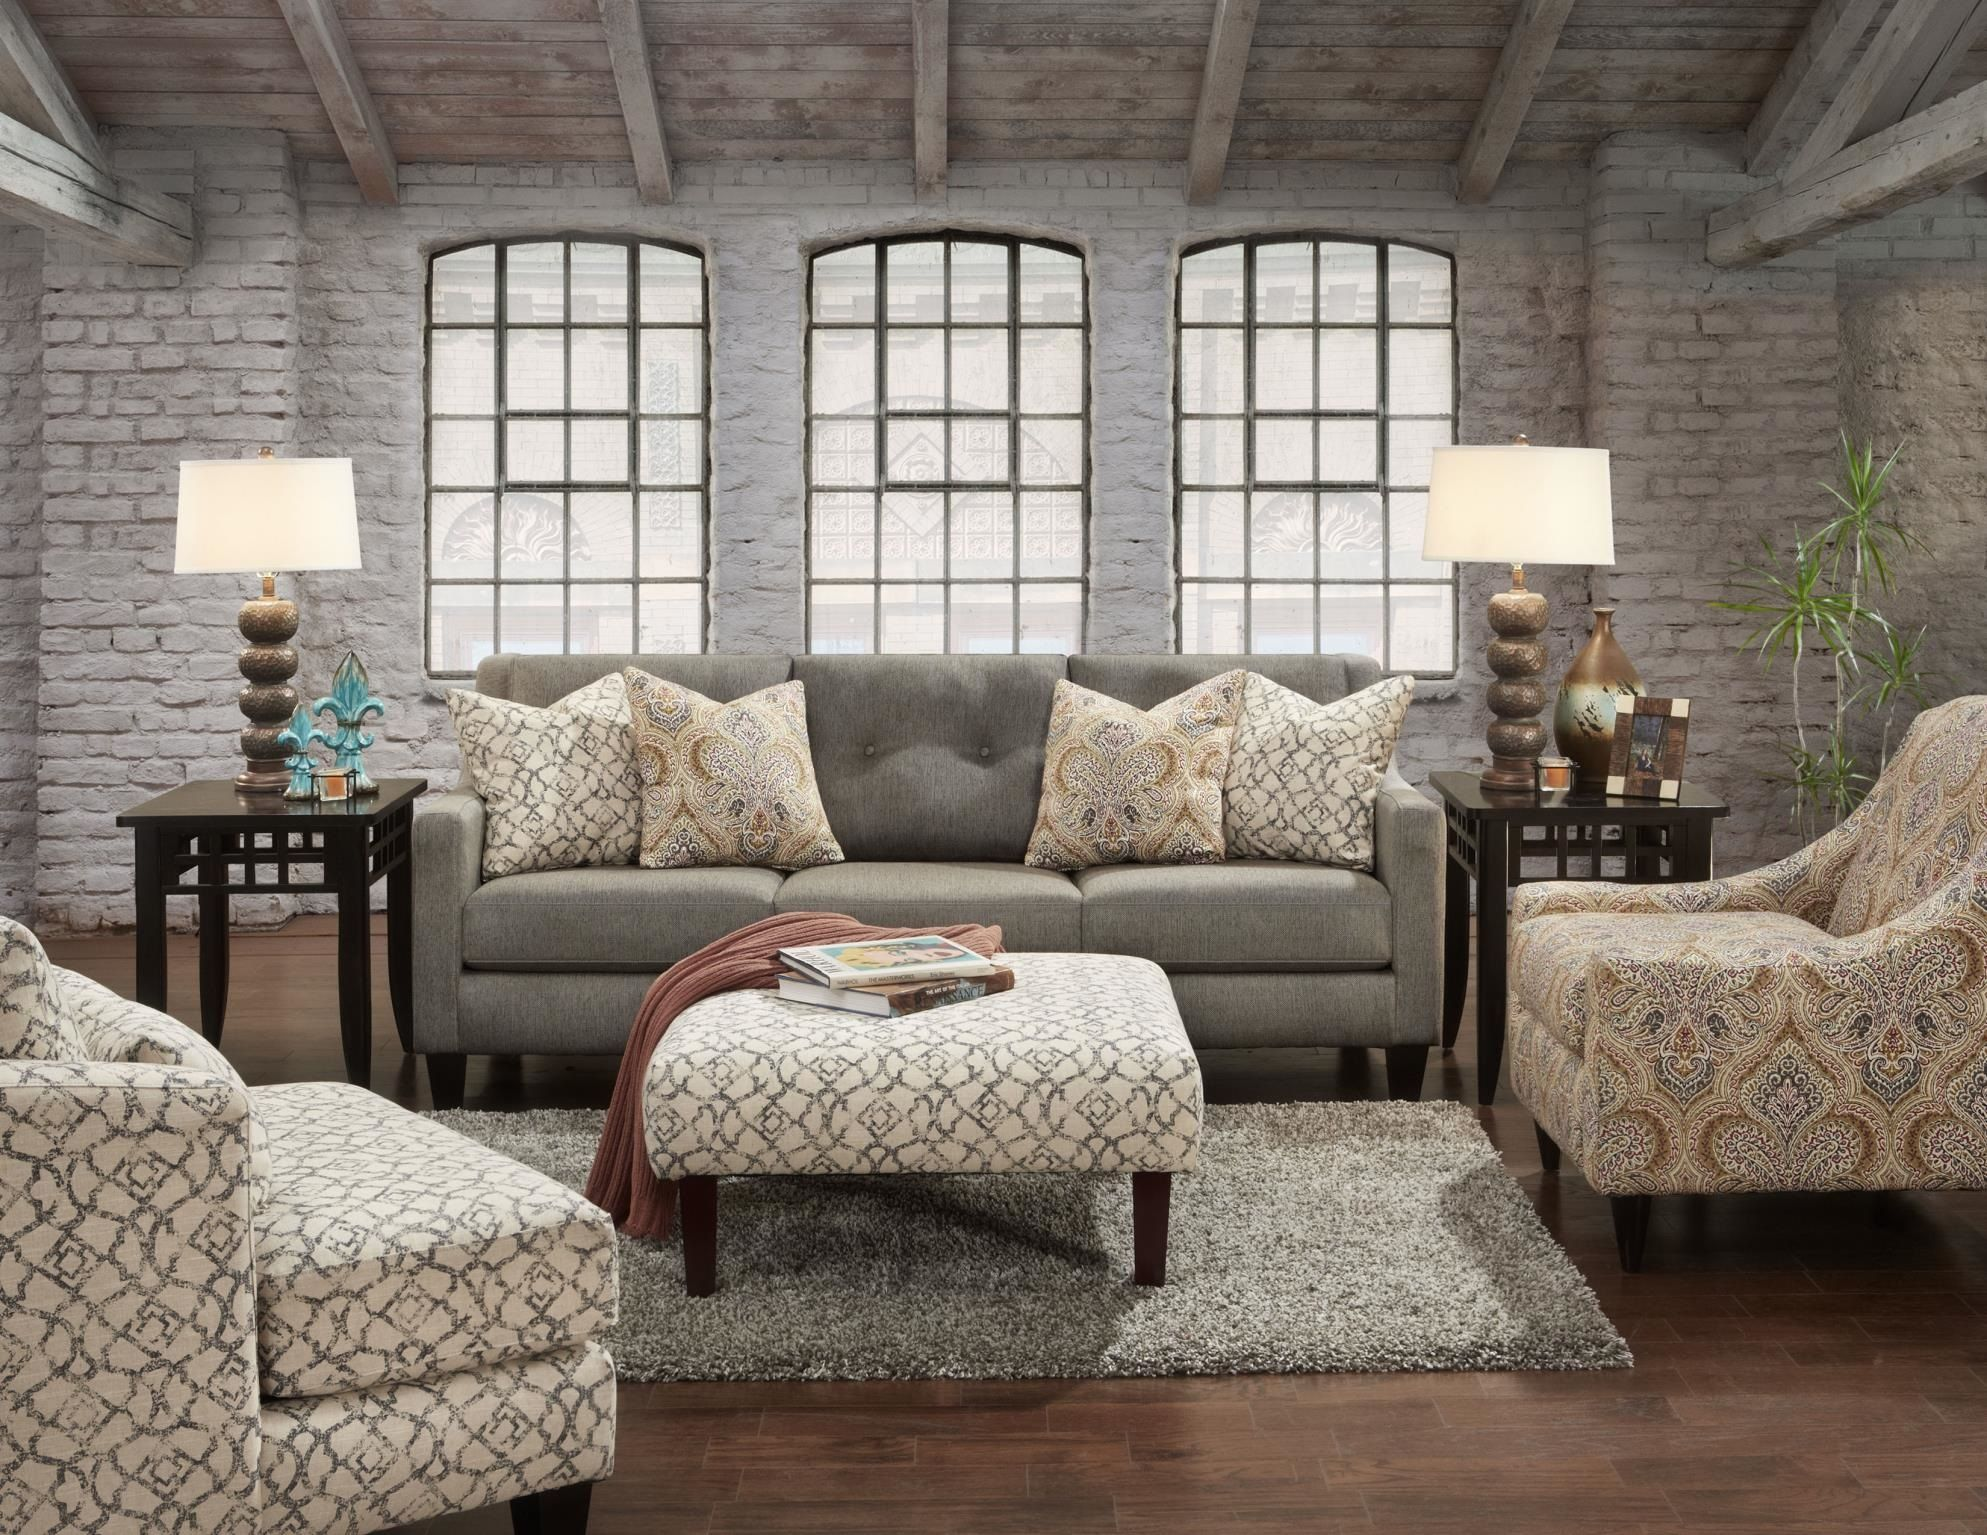 grey living room sets luxury caroline living room set by fusion at crowley furniture in kansas city carla 3280bmeritage gray sets from